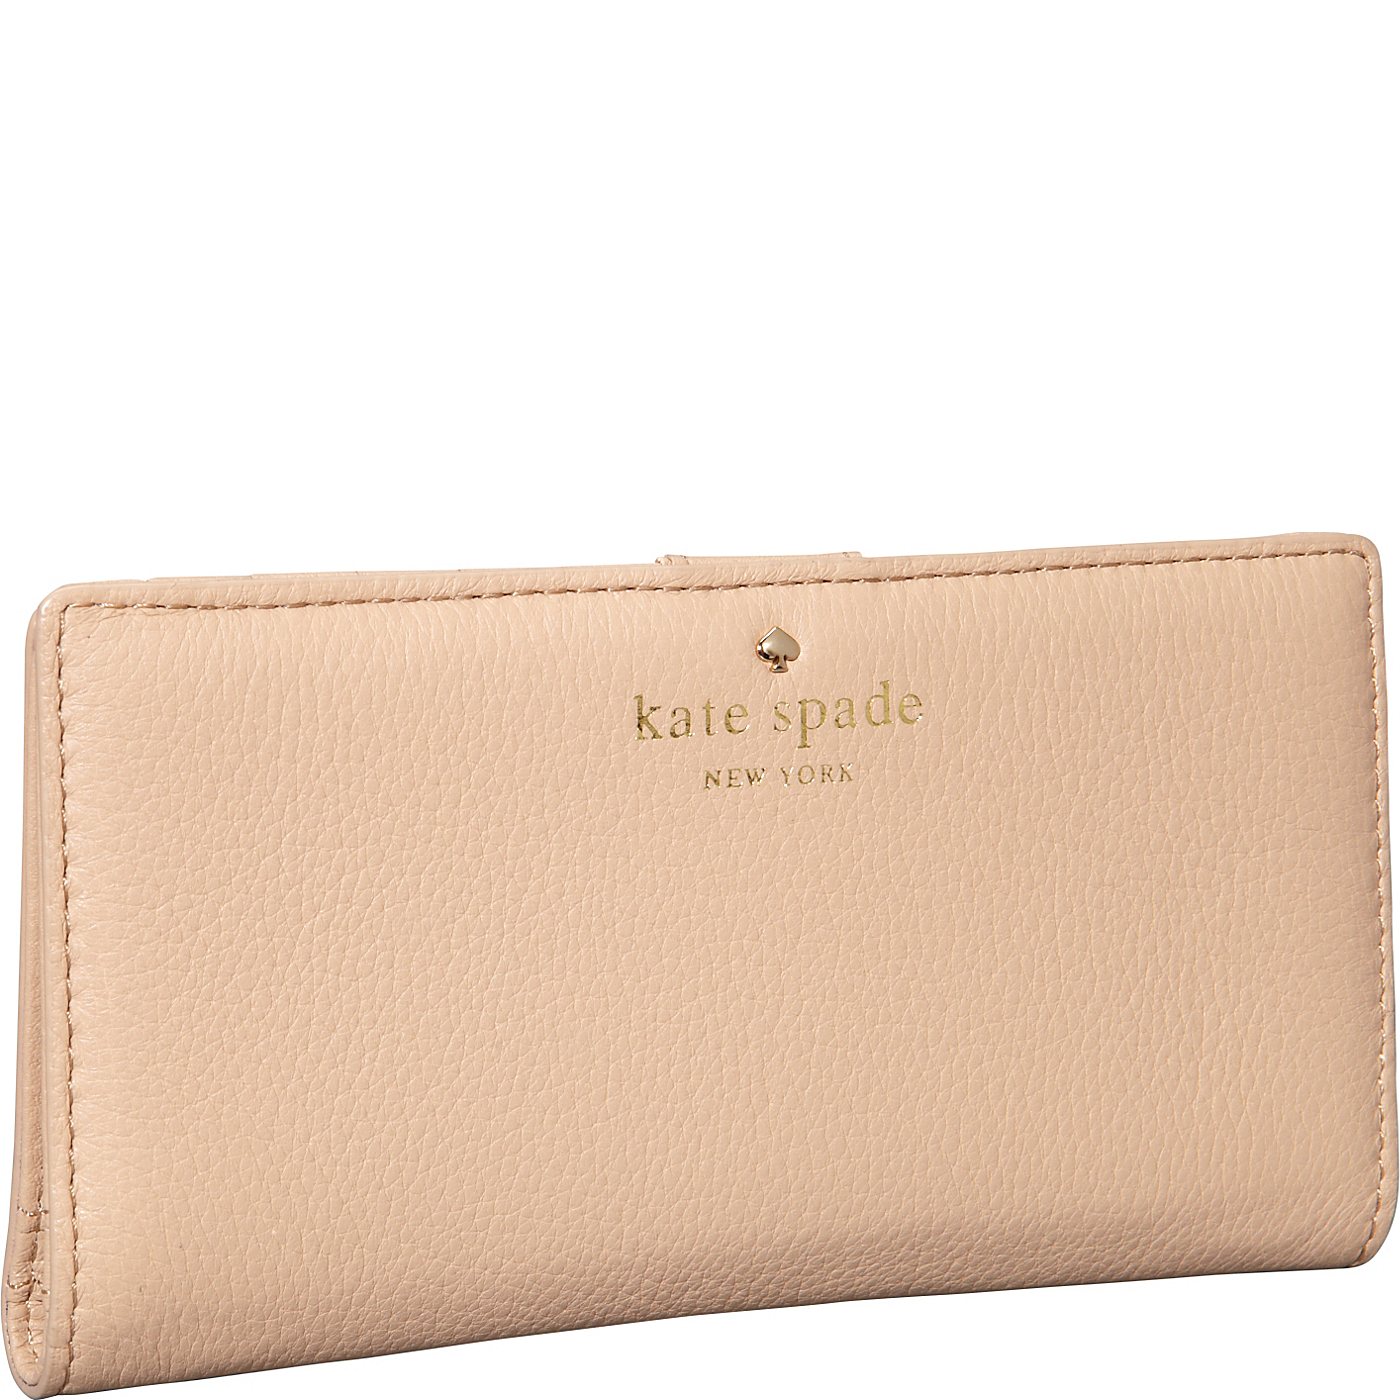 kate spade new york Cobble Hill Stacy Contiental Wallet